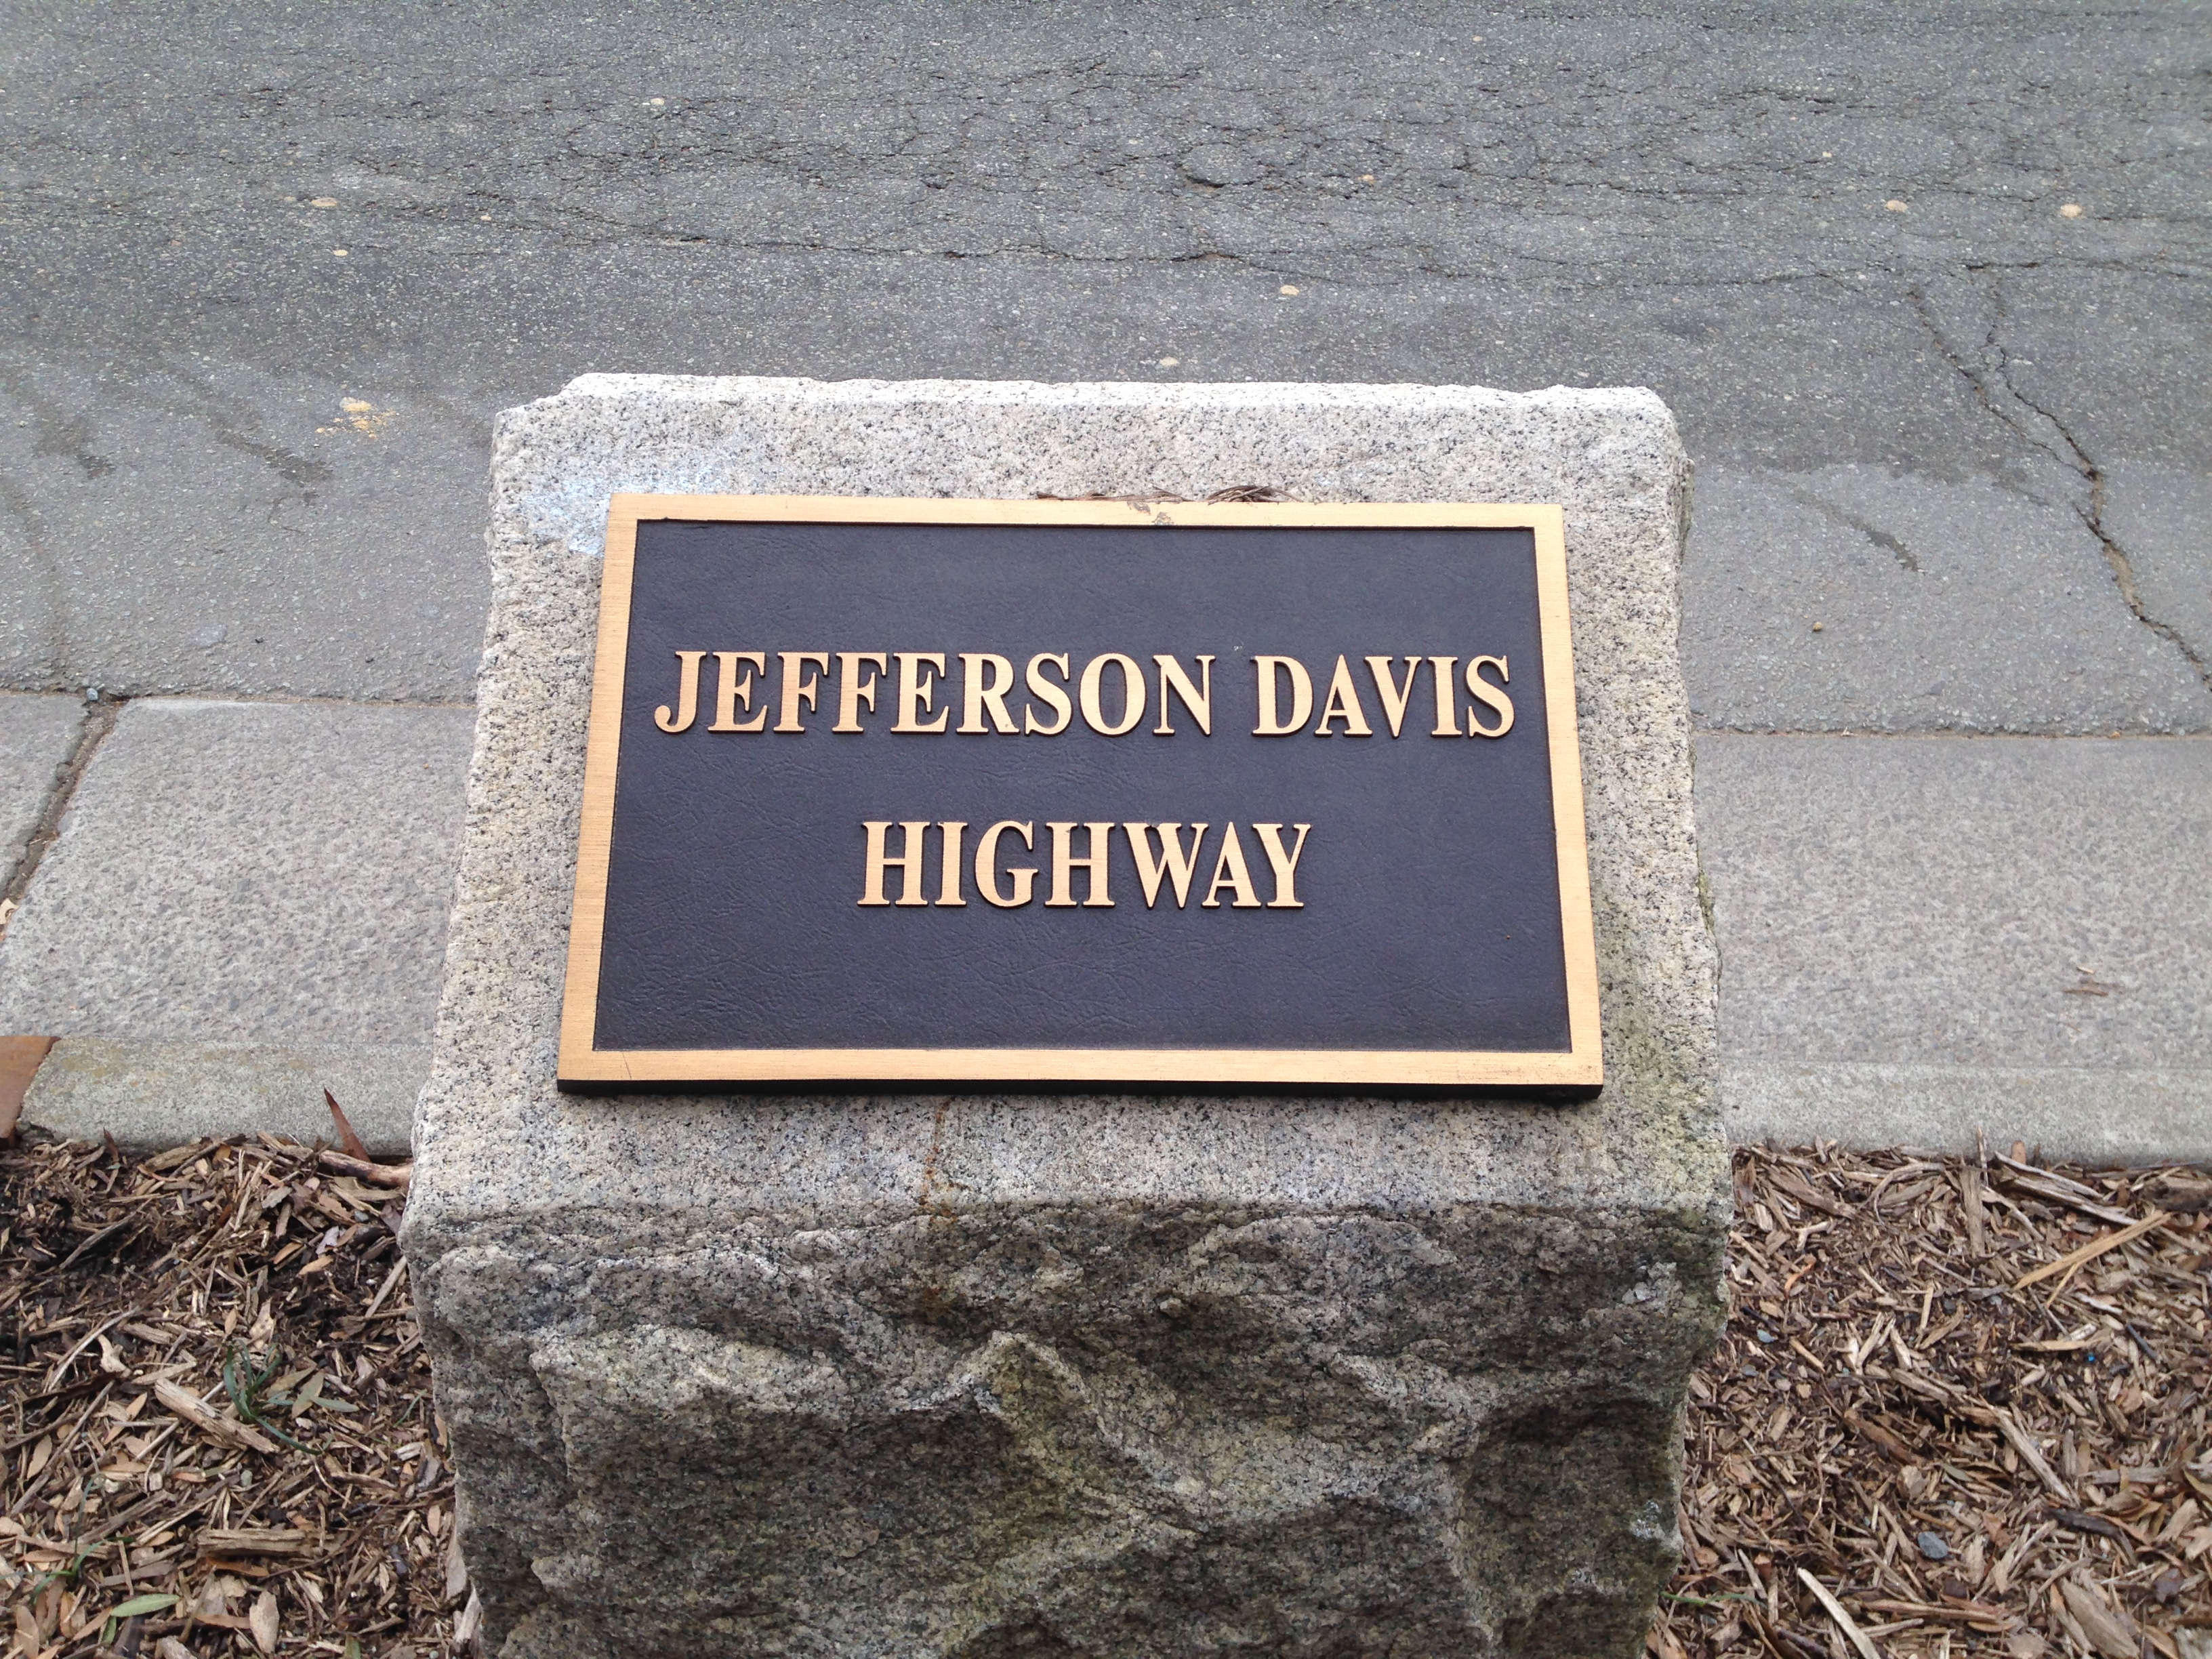 Chapel Hill Revisiting Options for Jefferson Davis Highway Marker